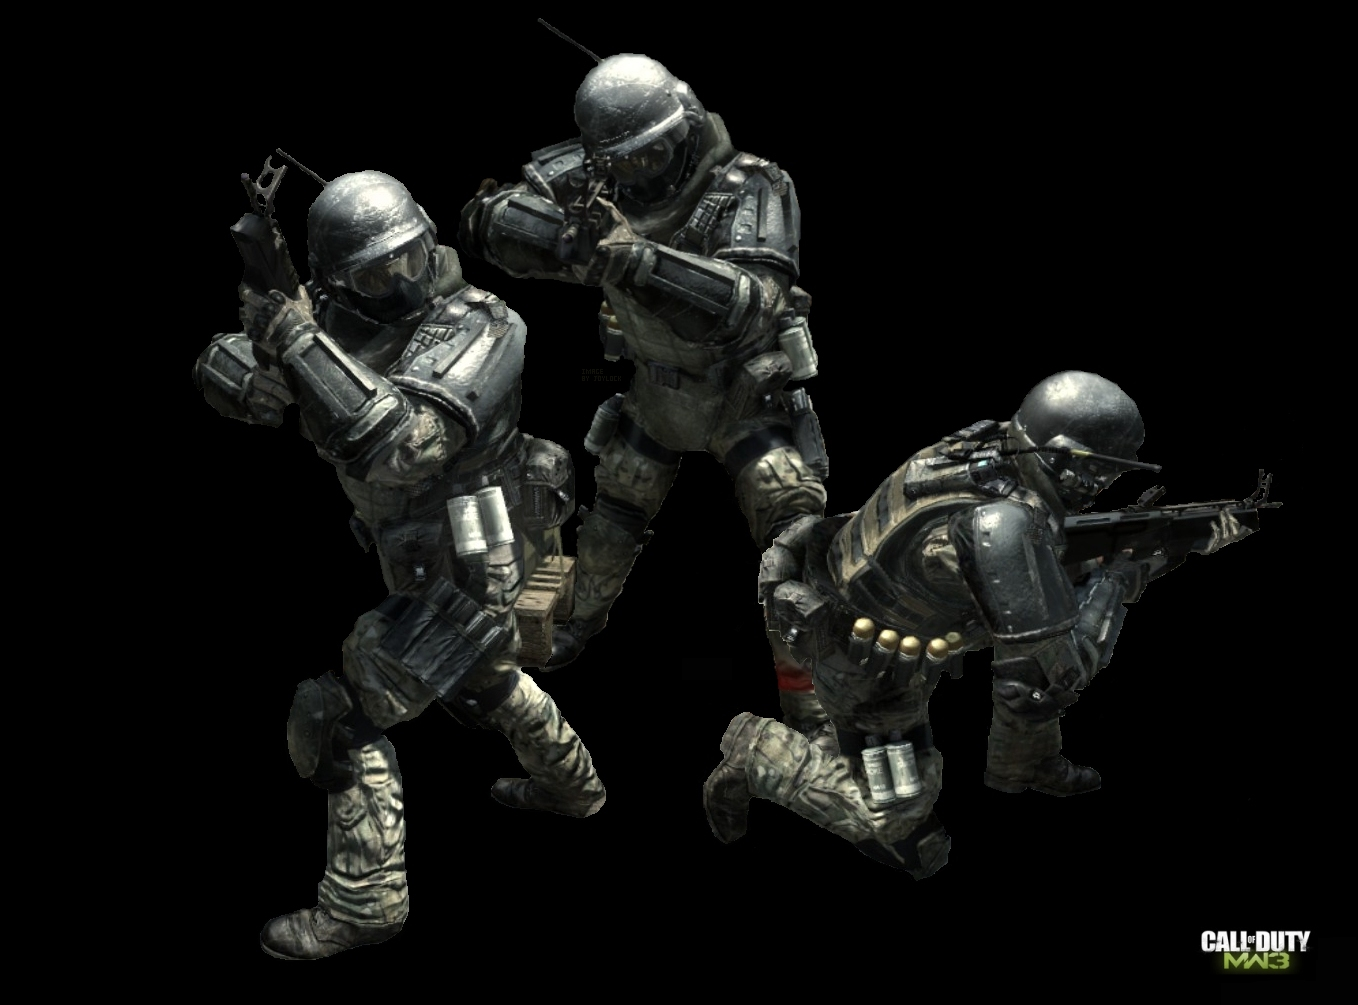 Survival Mode | Call of Duty Wiki | FANDOM powered by Wikia